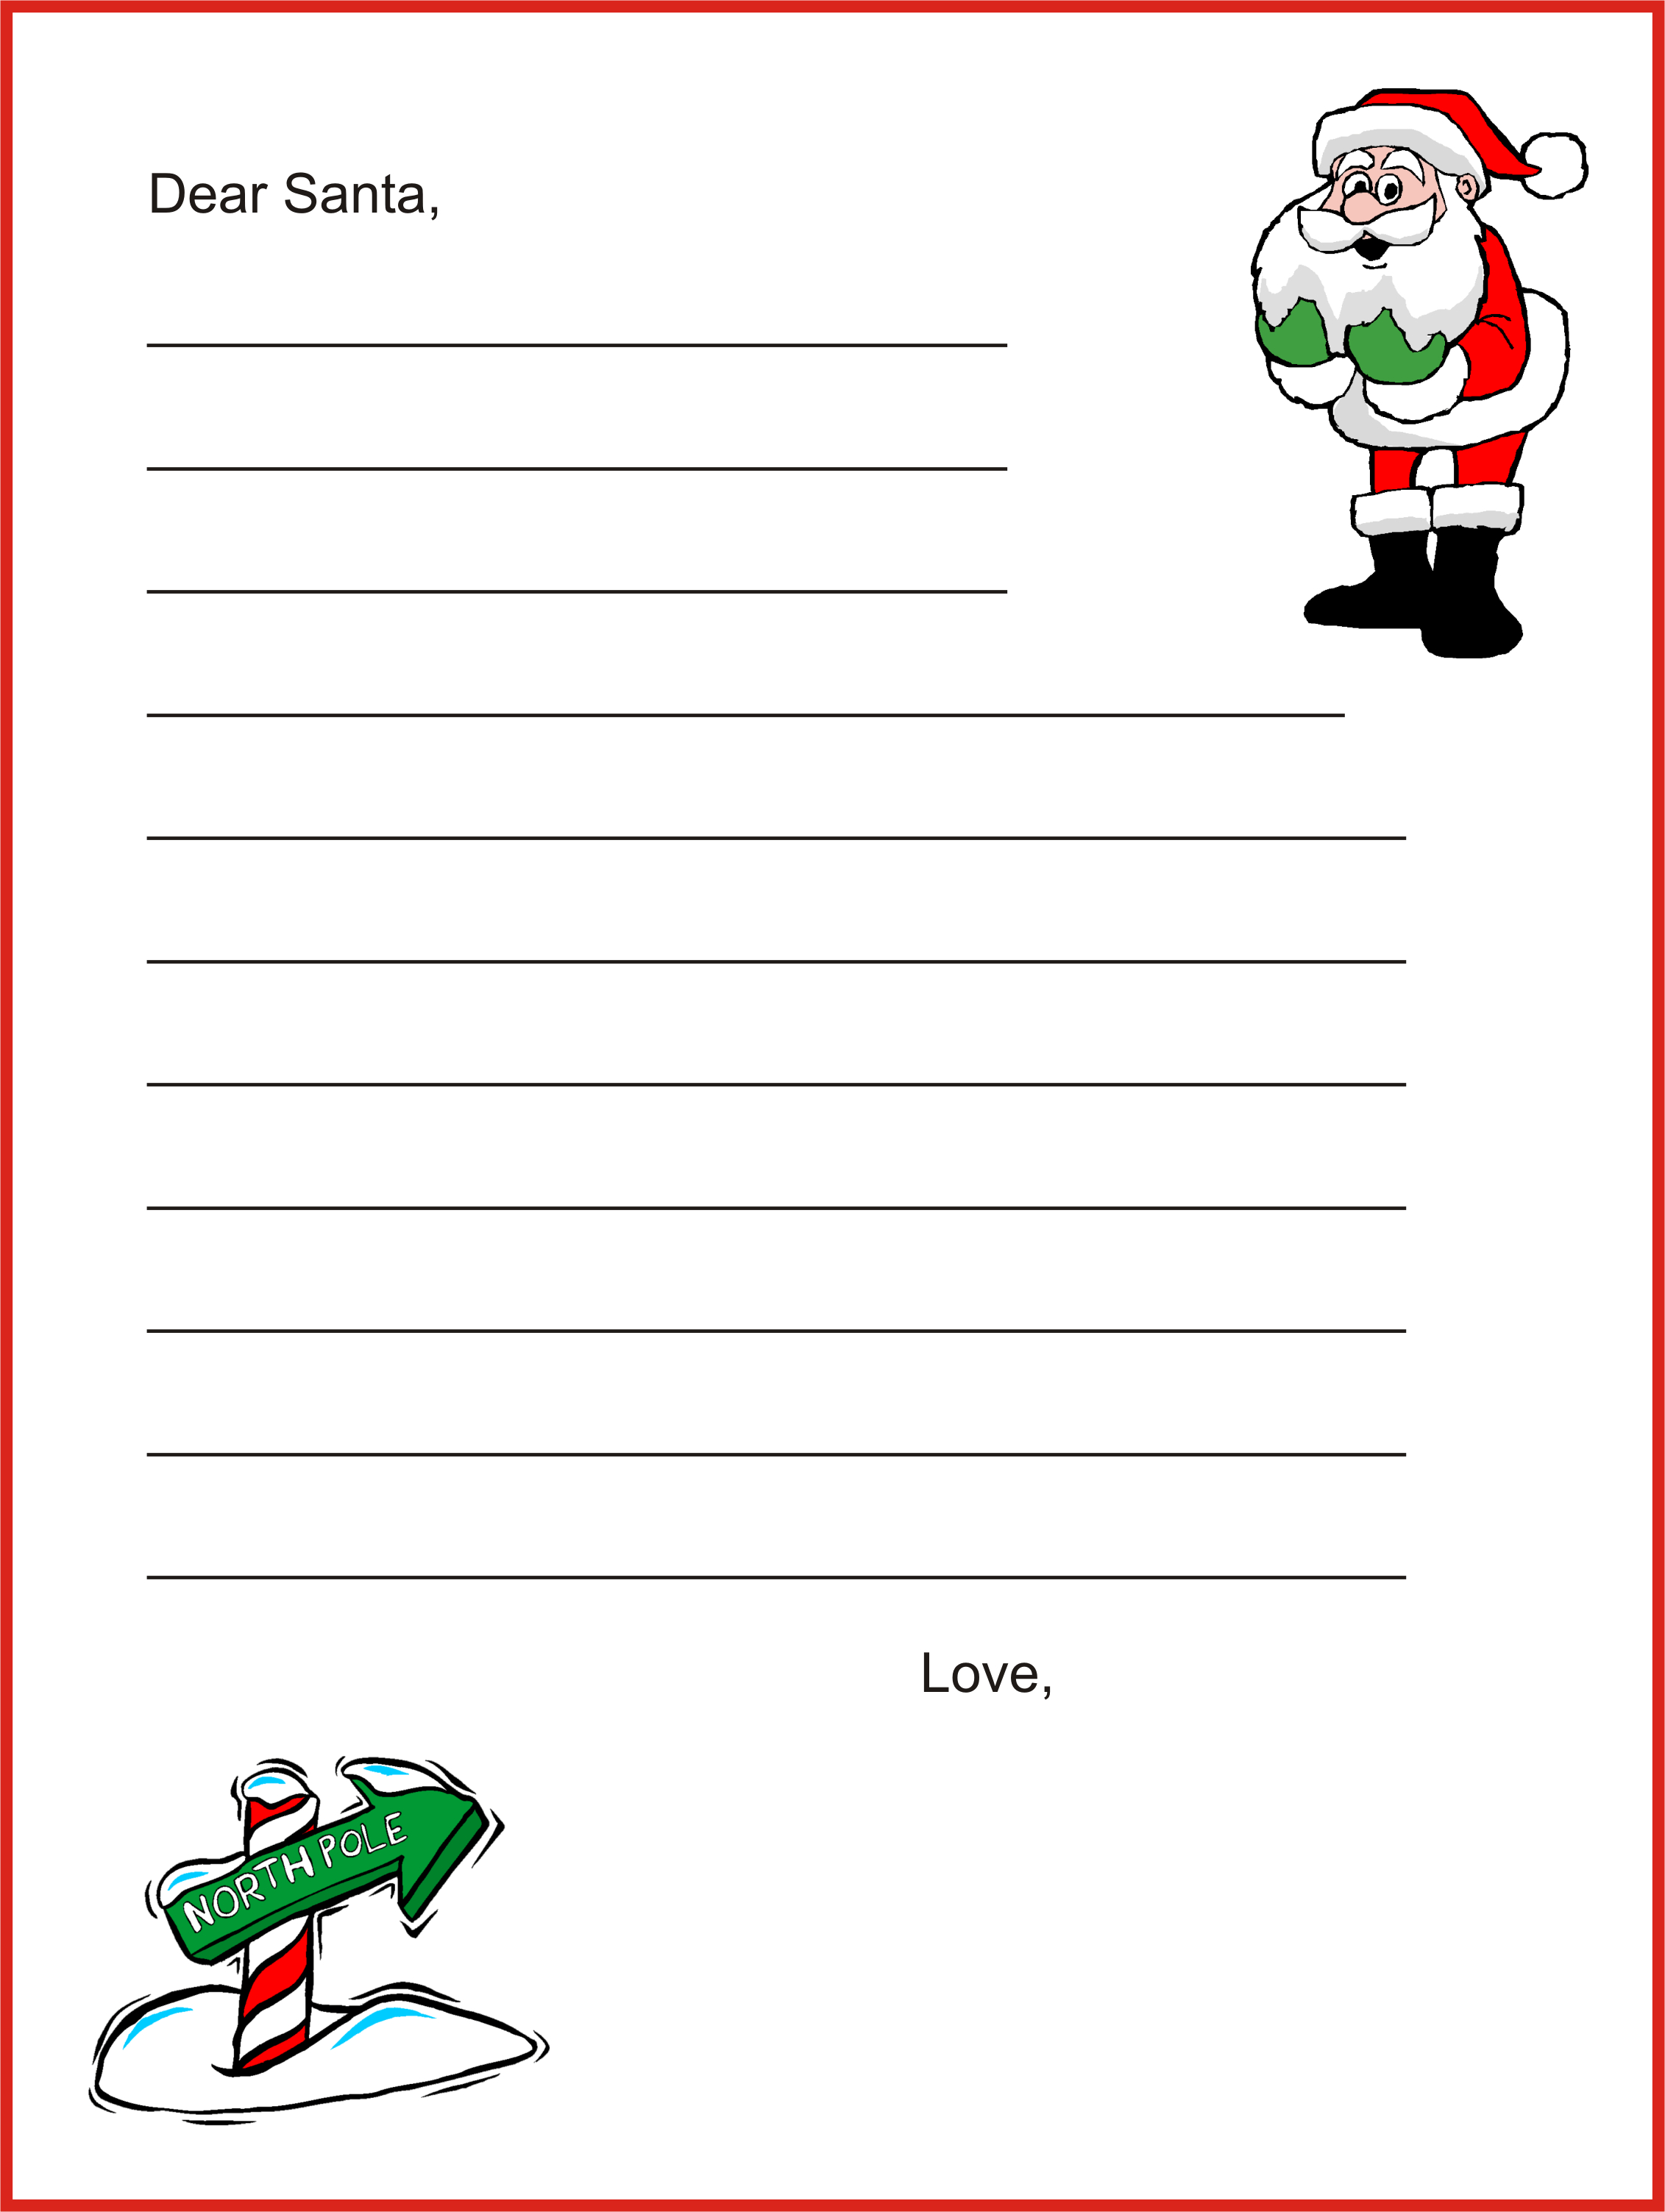 Dear Santa Letter Template   Christmas Letter Tips.|